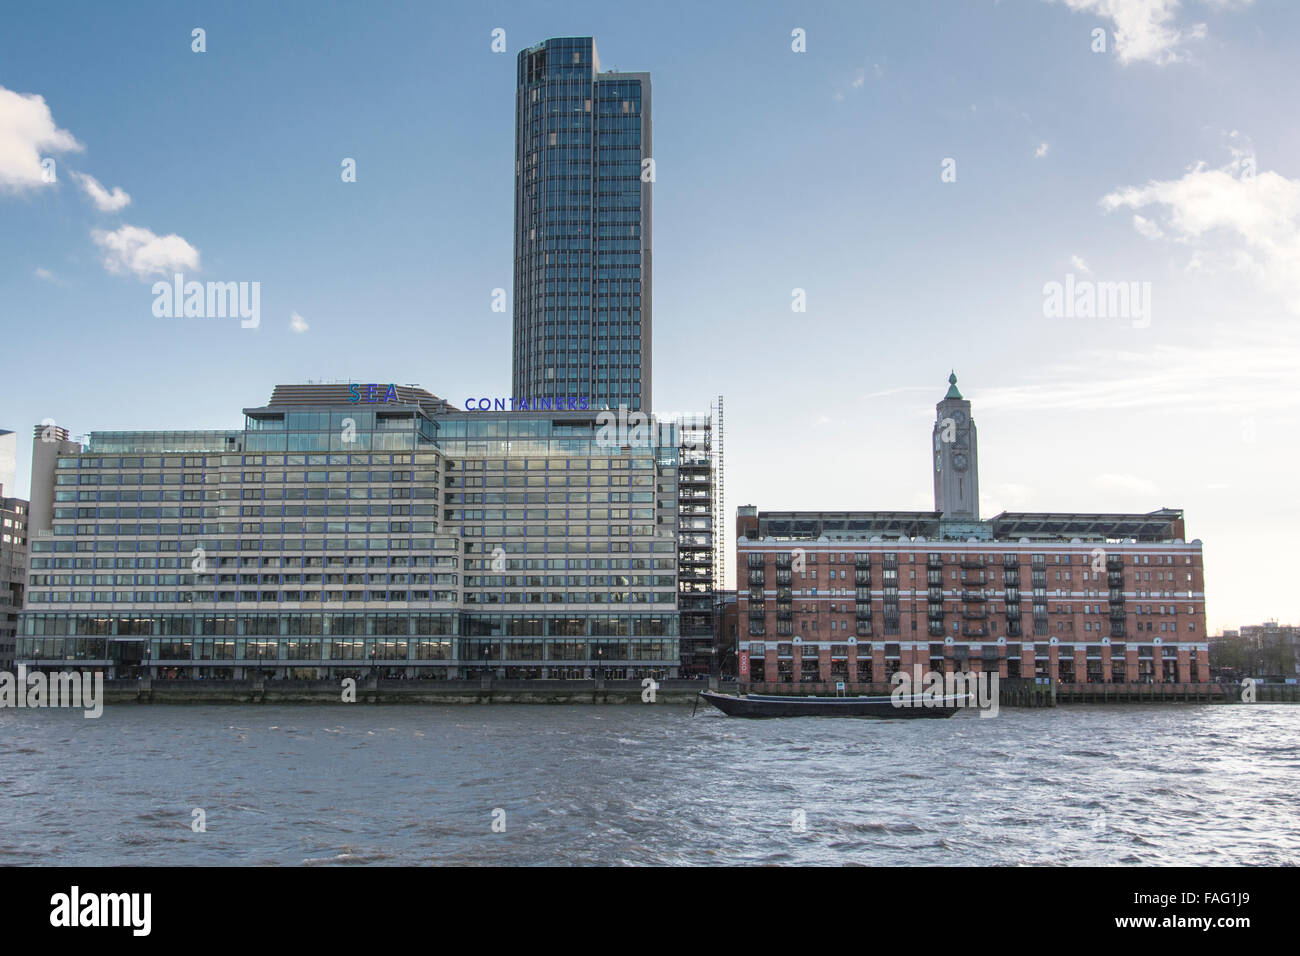 Container Haus London See Container Haus Oxo Tower Wharf Und Der South Bank London Uk